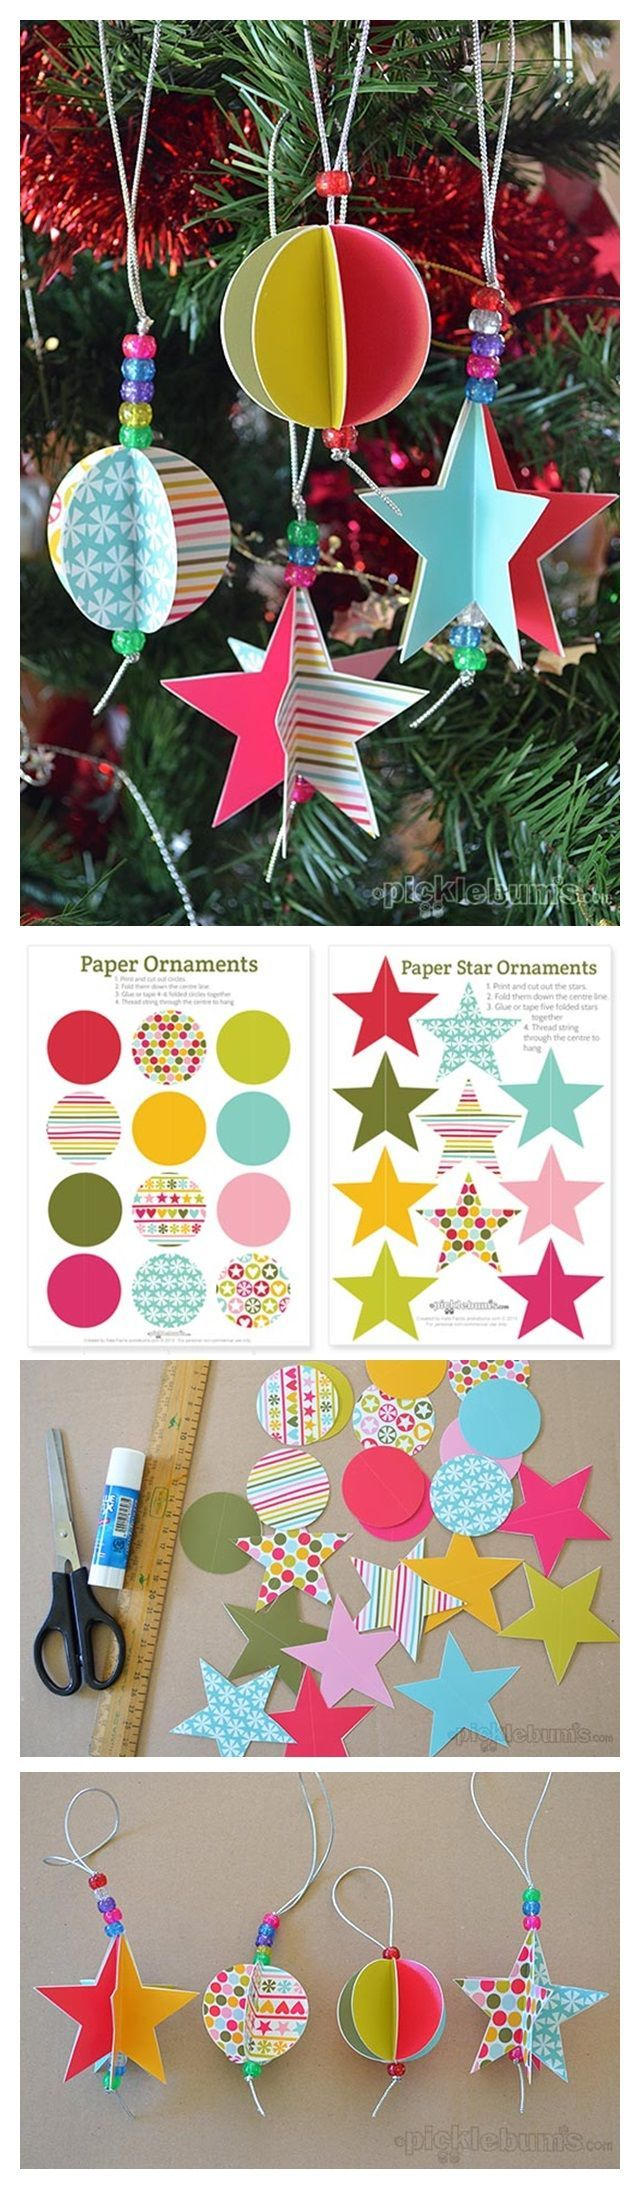 Paper christmas decorations to print - 2013 Christmas Printables Star And Circle Paper Decorations